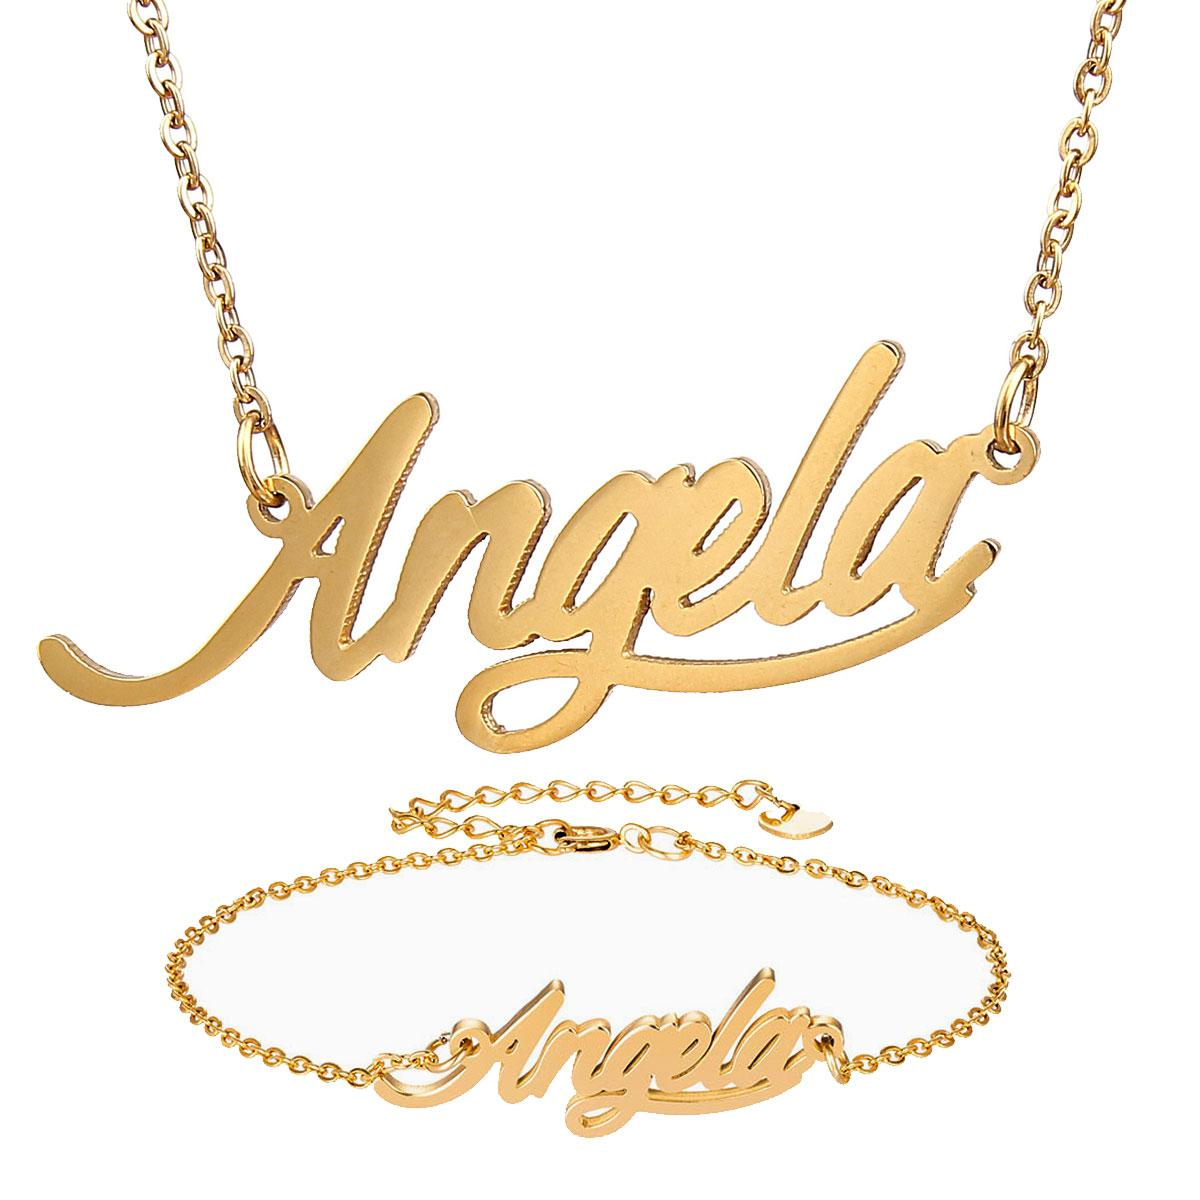 "Fashion Jewelry Stainless Steel Name Necklace + Bracelet Set "" Angela "" Script Letter Gold Choker Chain Necklace Pendant Nameplate Gift"